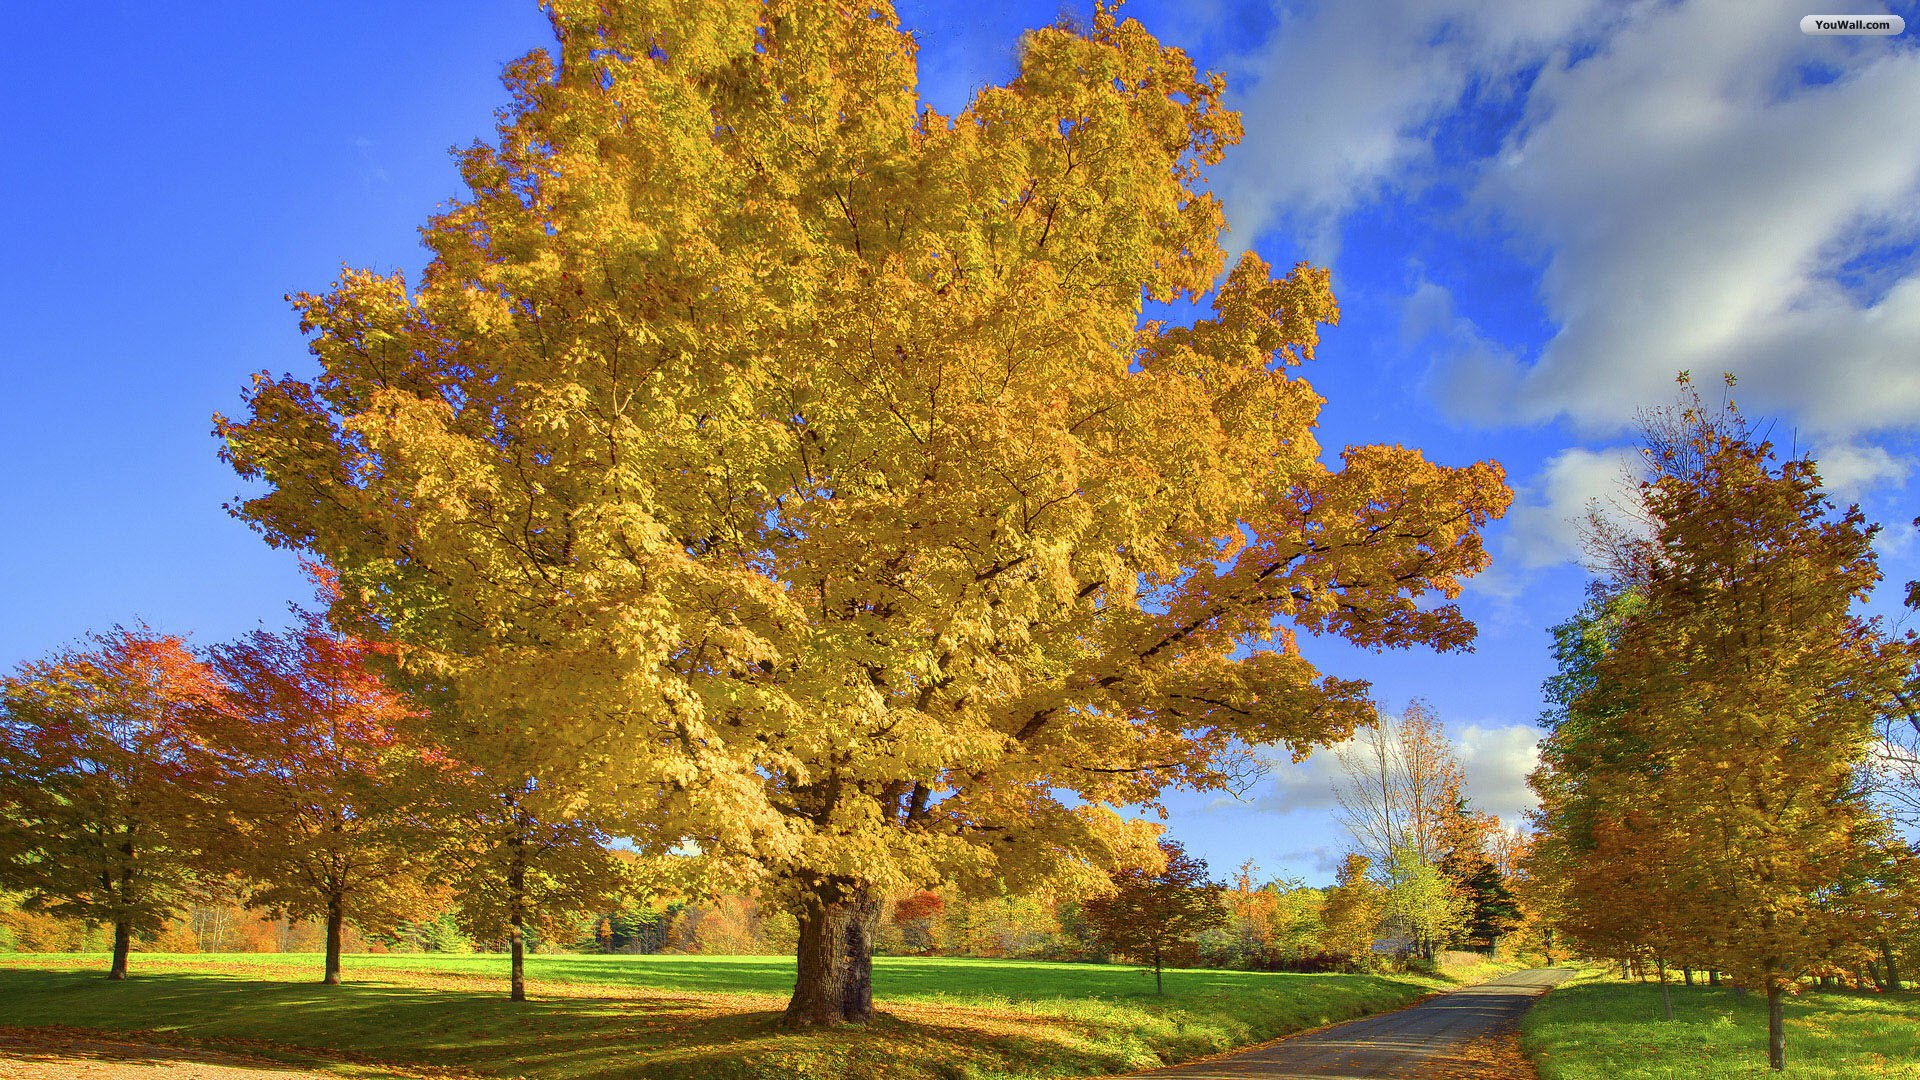 Autumn Trees Backgrounds wallpaper Autumn Trees Backgrounds hd 1920x1080